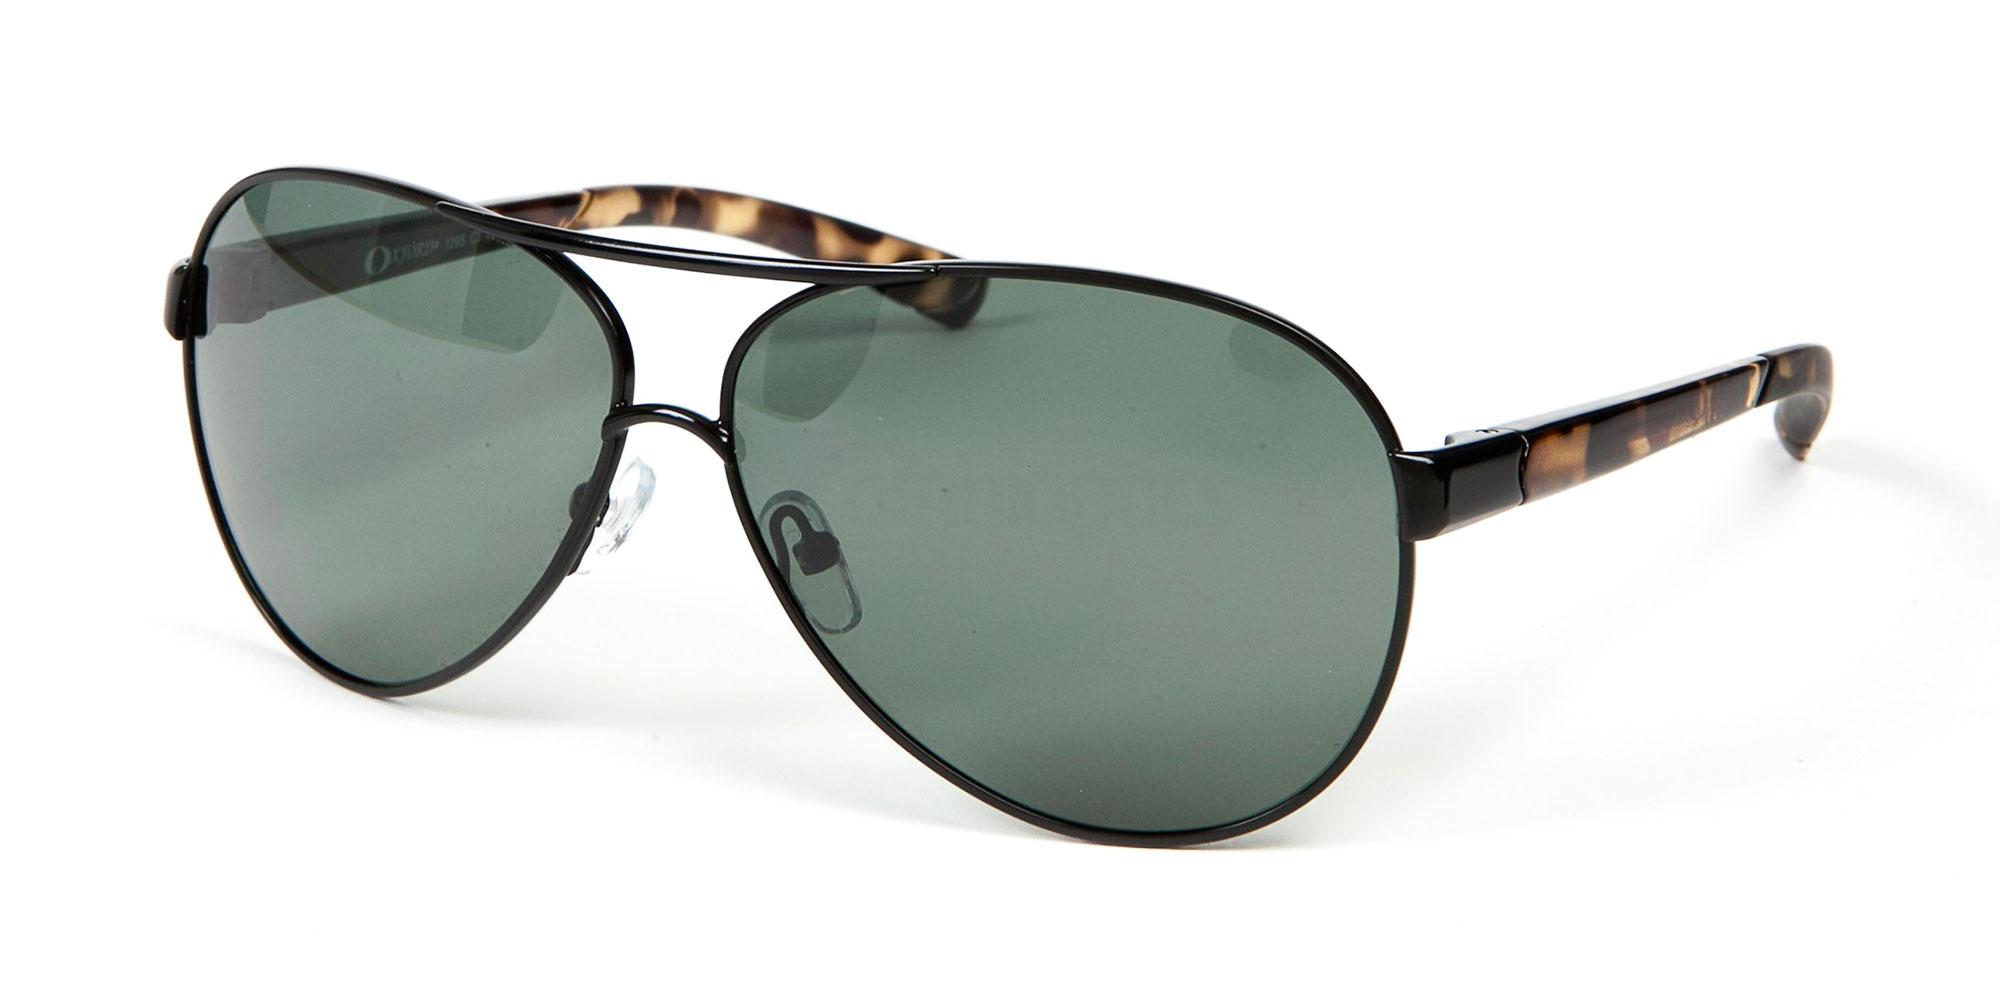 C1 129S Sunglasses, Oxford